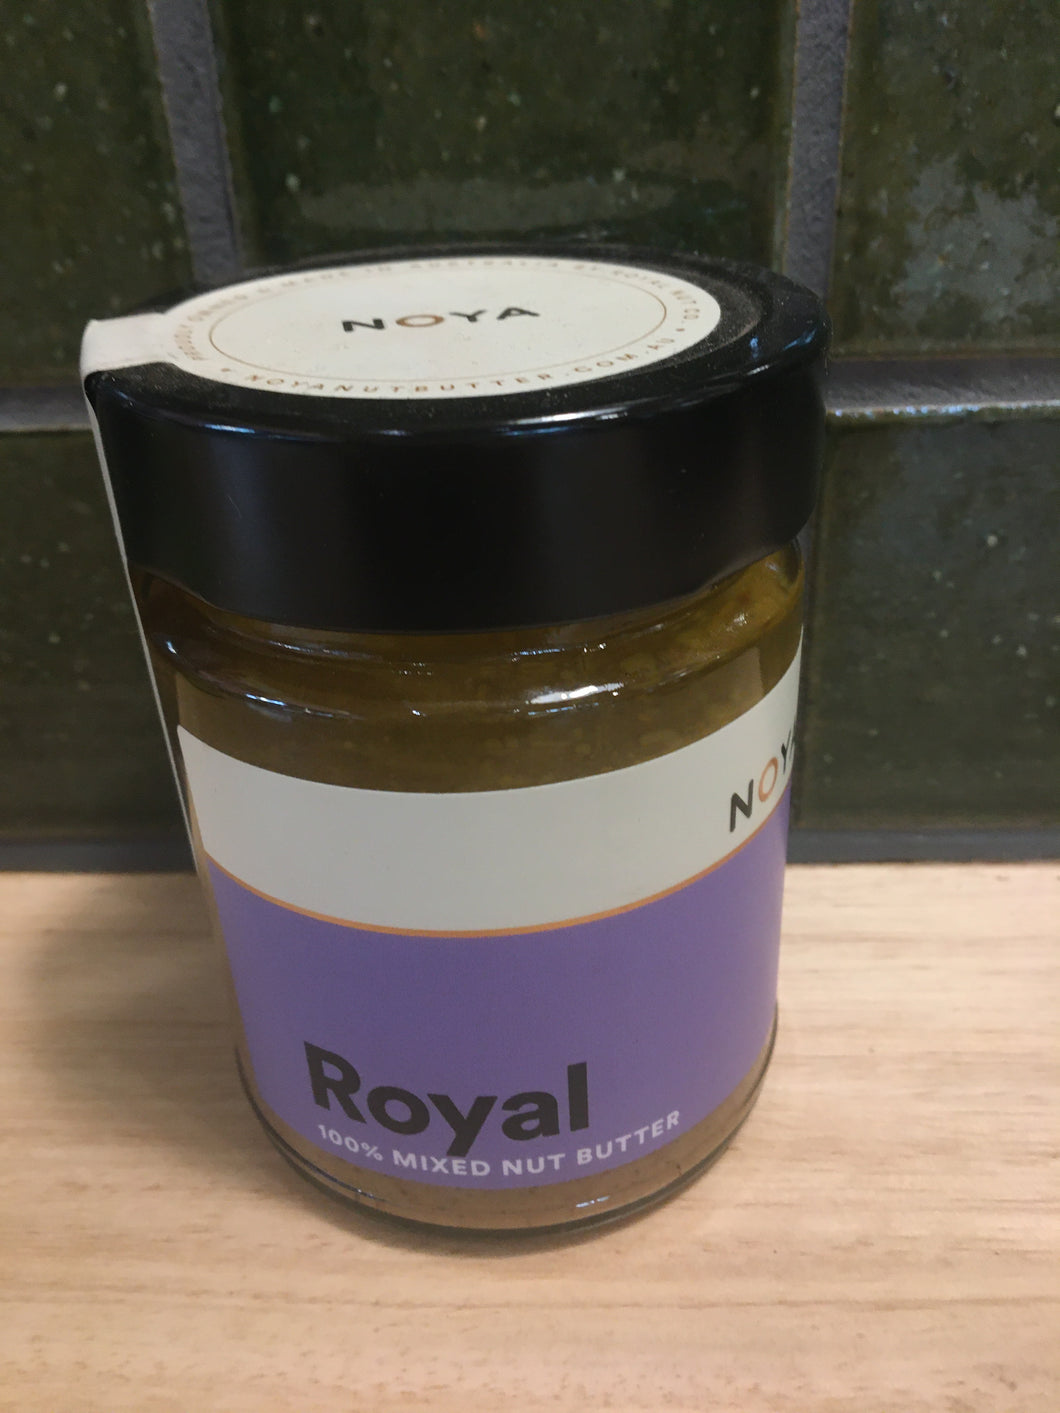 Noya Royal Mixed Nut Butter 250g